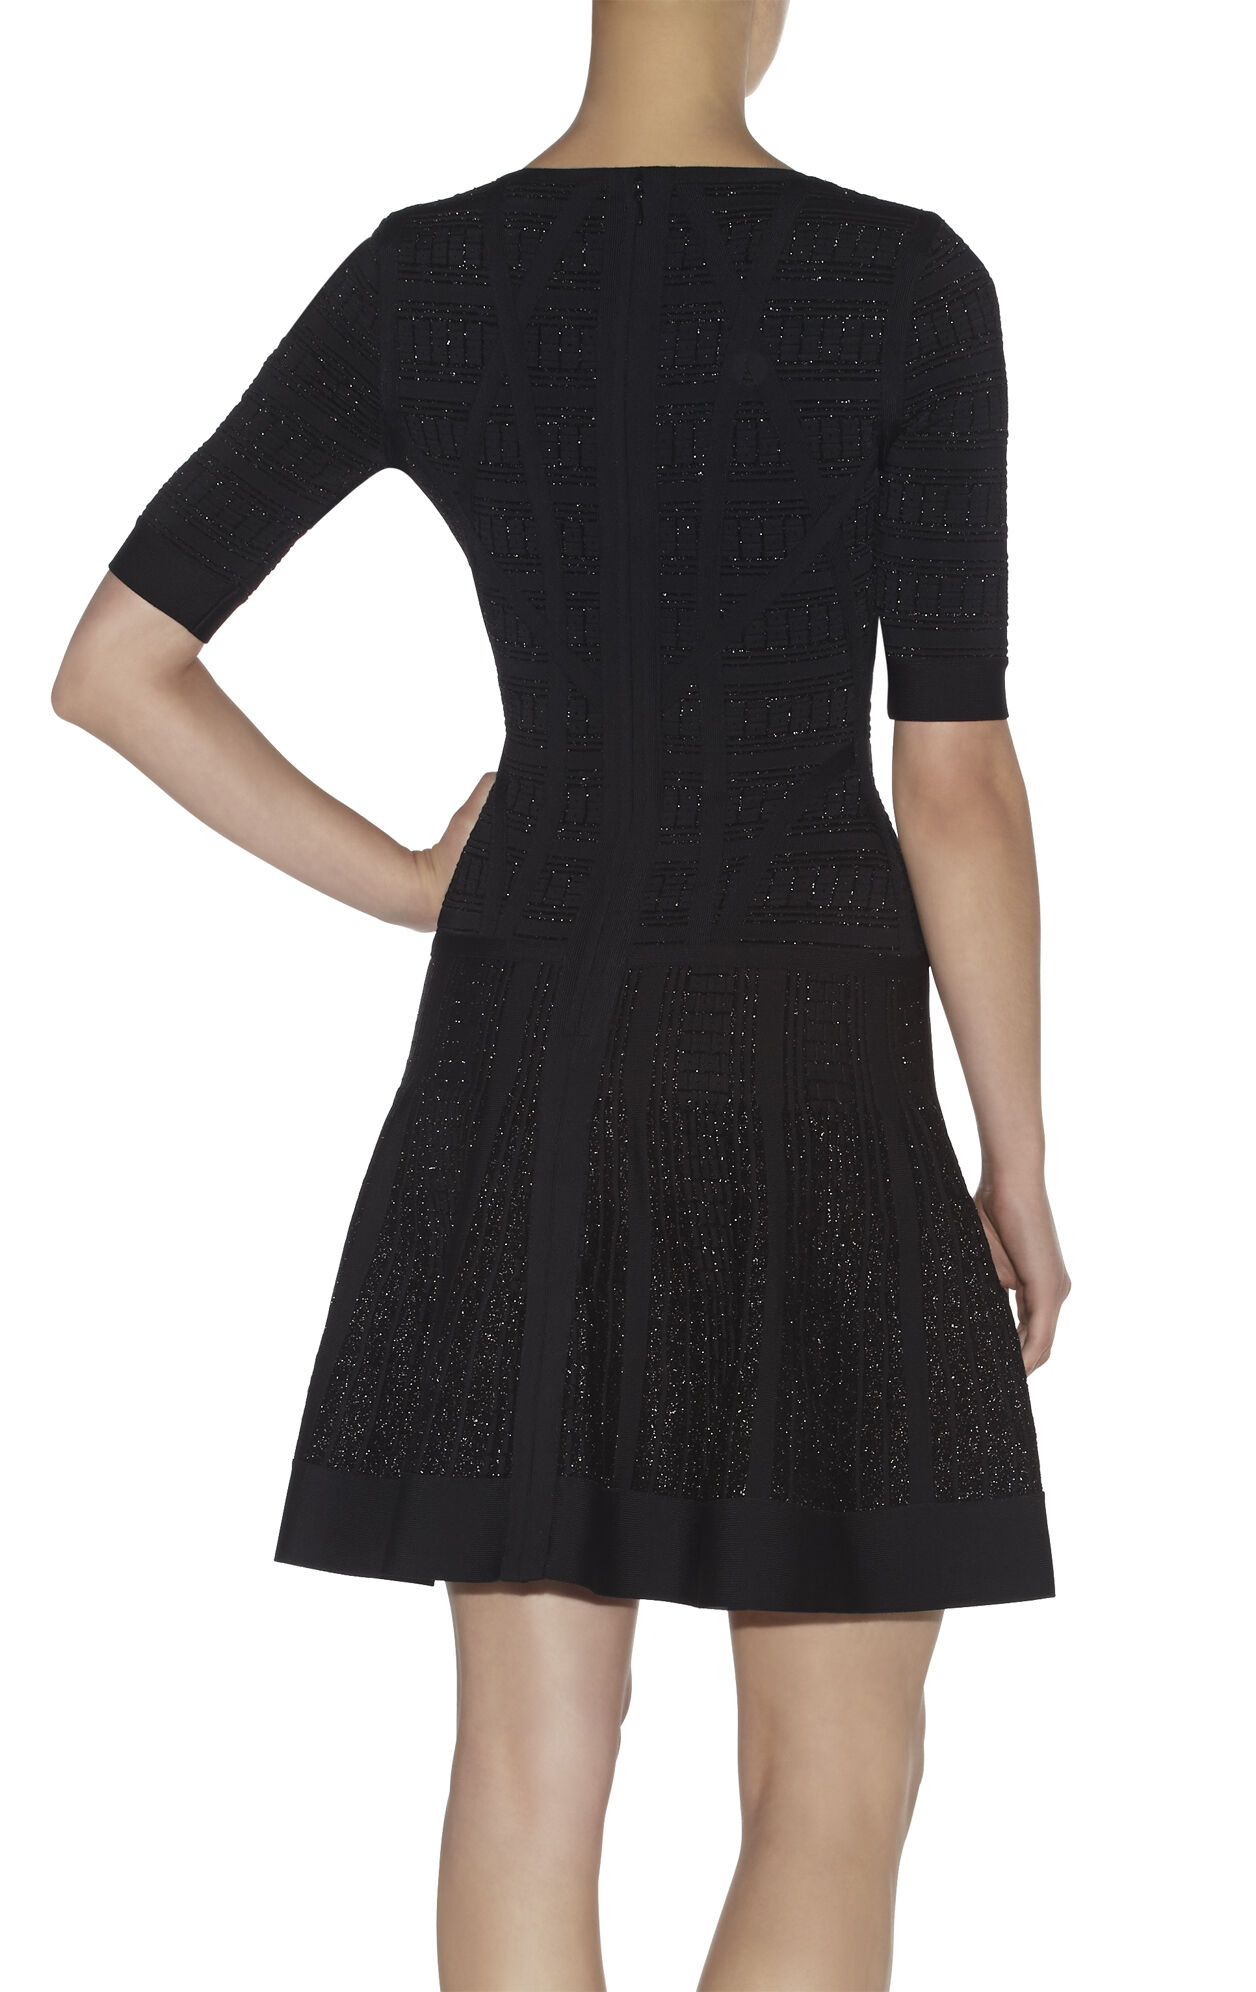 Clara Textured Jacquard Yarn Dress